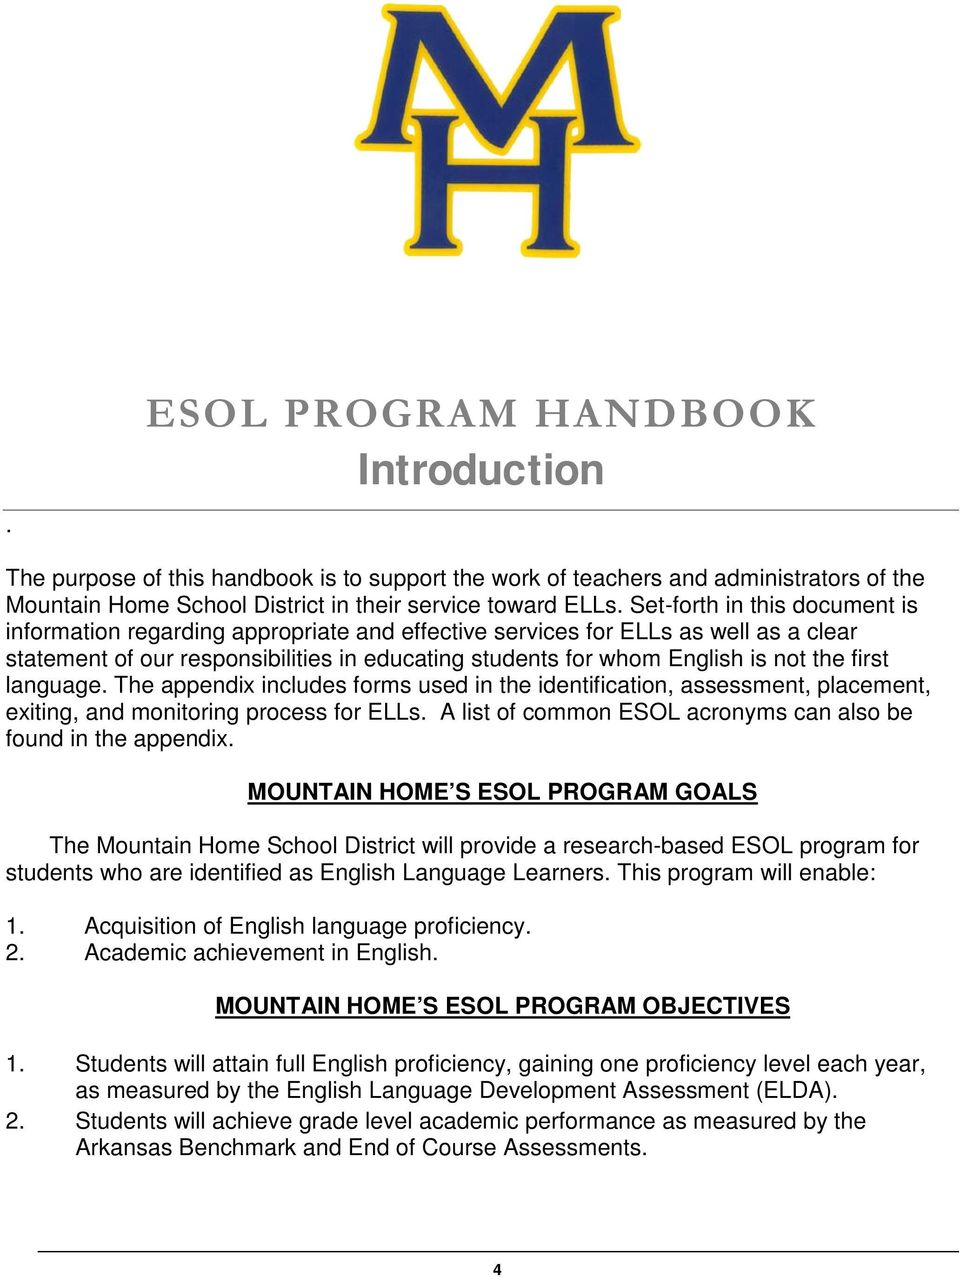 first language. The appendix includes forms used in the identification, assessment, placement, exiting, and monitoring process for ELLs.